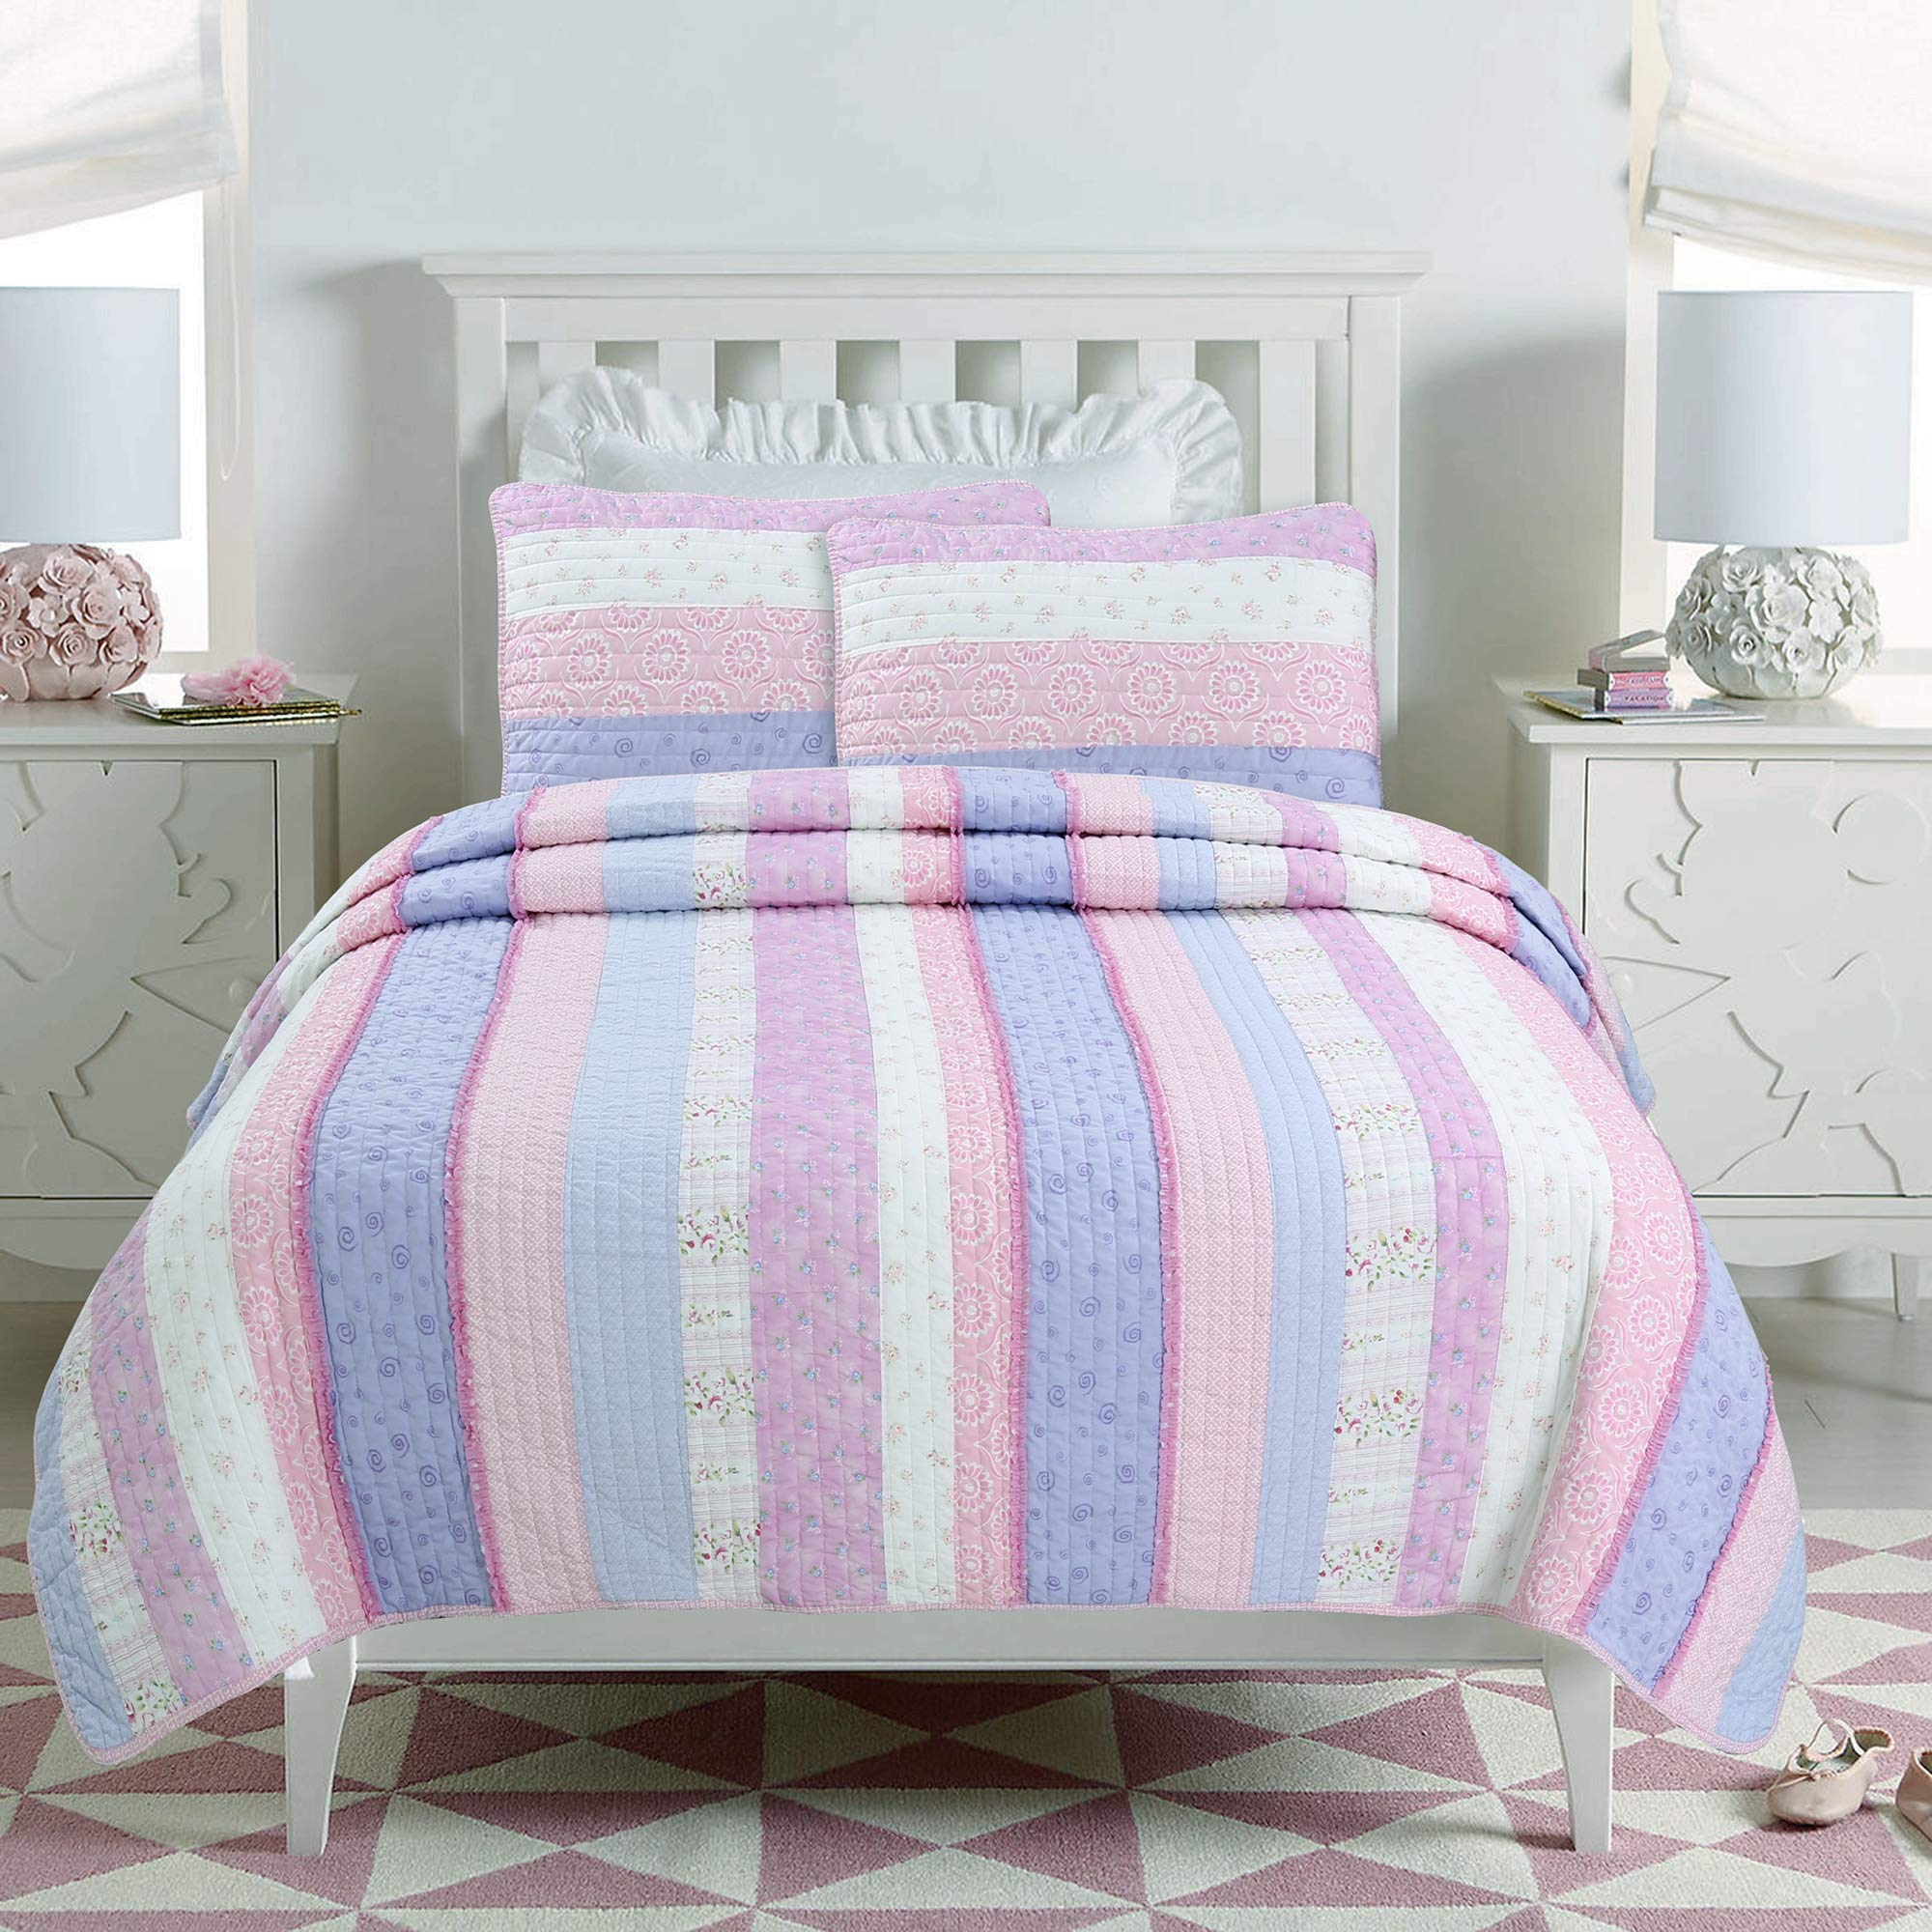 Cozy Line Home Fashions Eden Pink Lilac White Romantic Lace Floral Flower Pattern Printed Striped 100% Cotton Bedding Quilt Set Reversible Coverlet Bedspread for Girls (Lilac Stripe, Twin - 2 Piece)